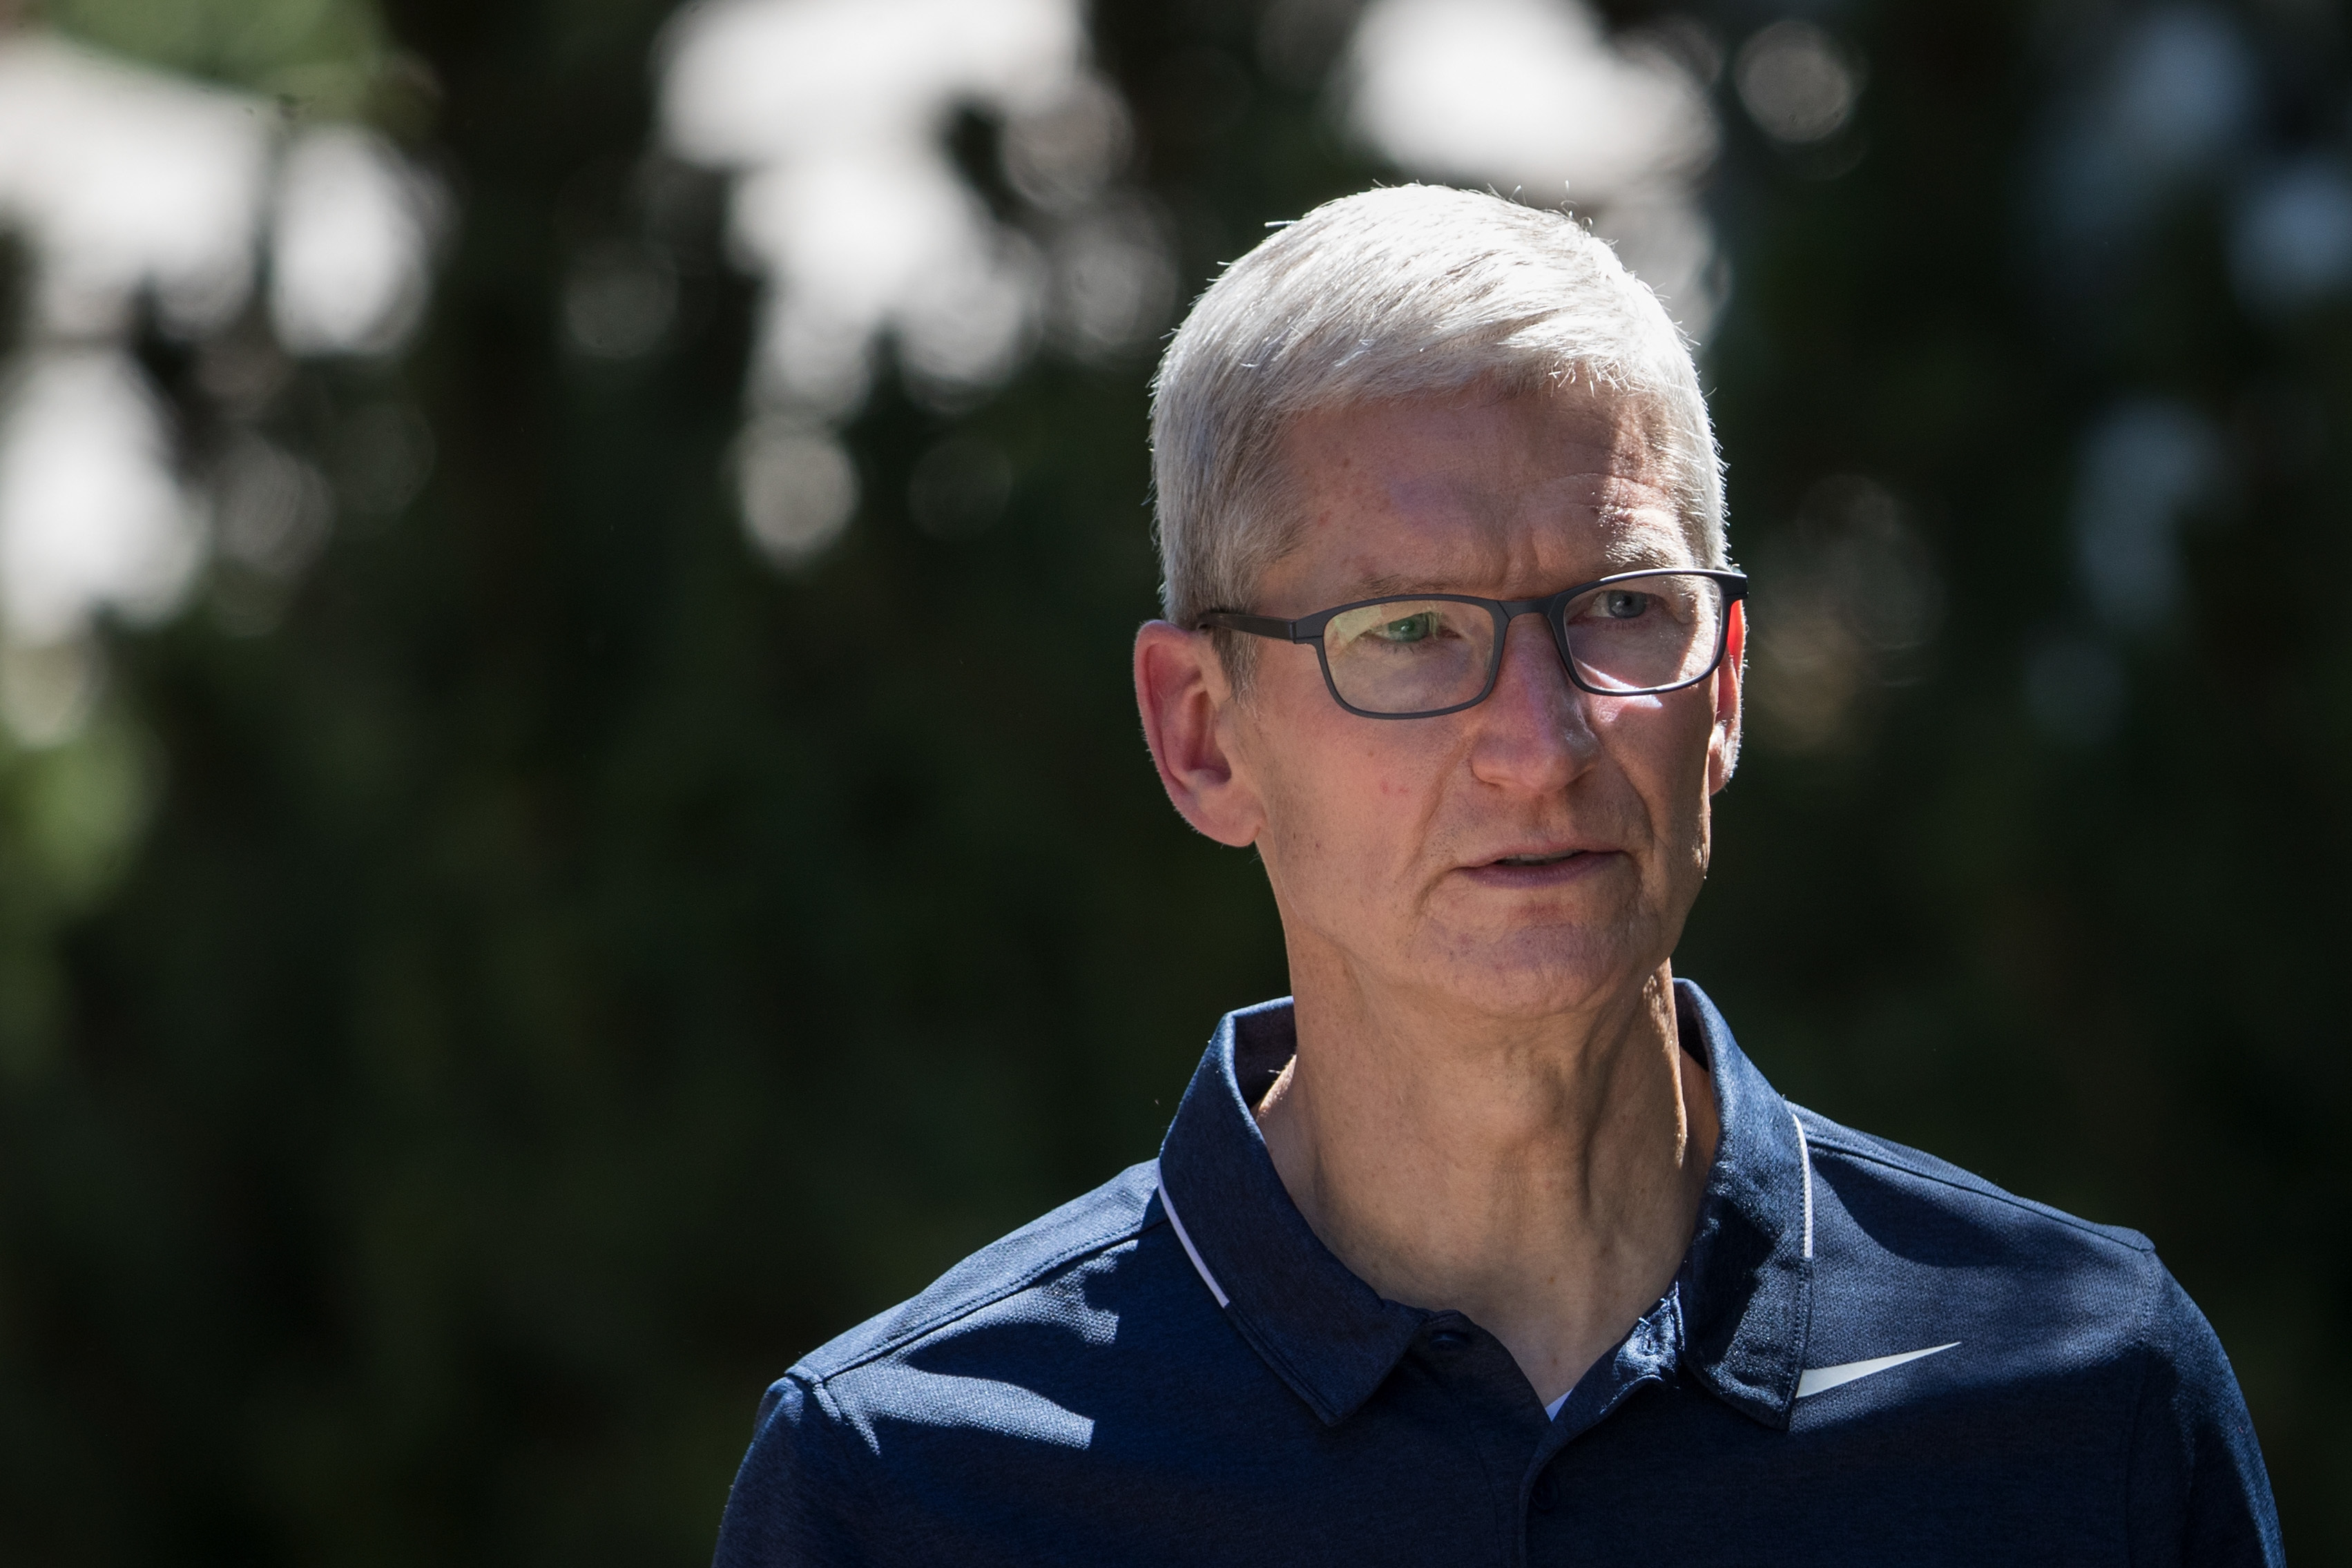 Thrilled by the response apple ceo tim cook said in a tweet that it - Tim Cook Describes Apple Car As The Mother Of All A I Projects Inverse